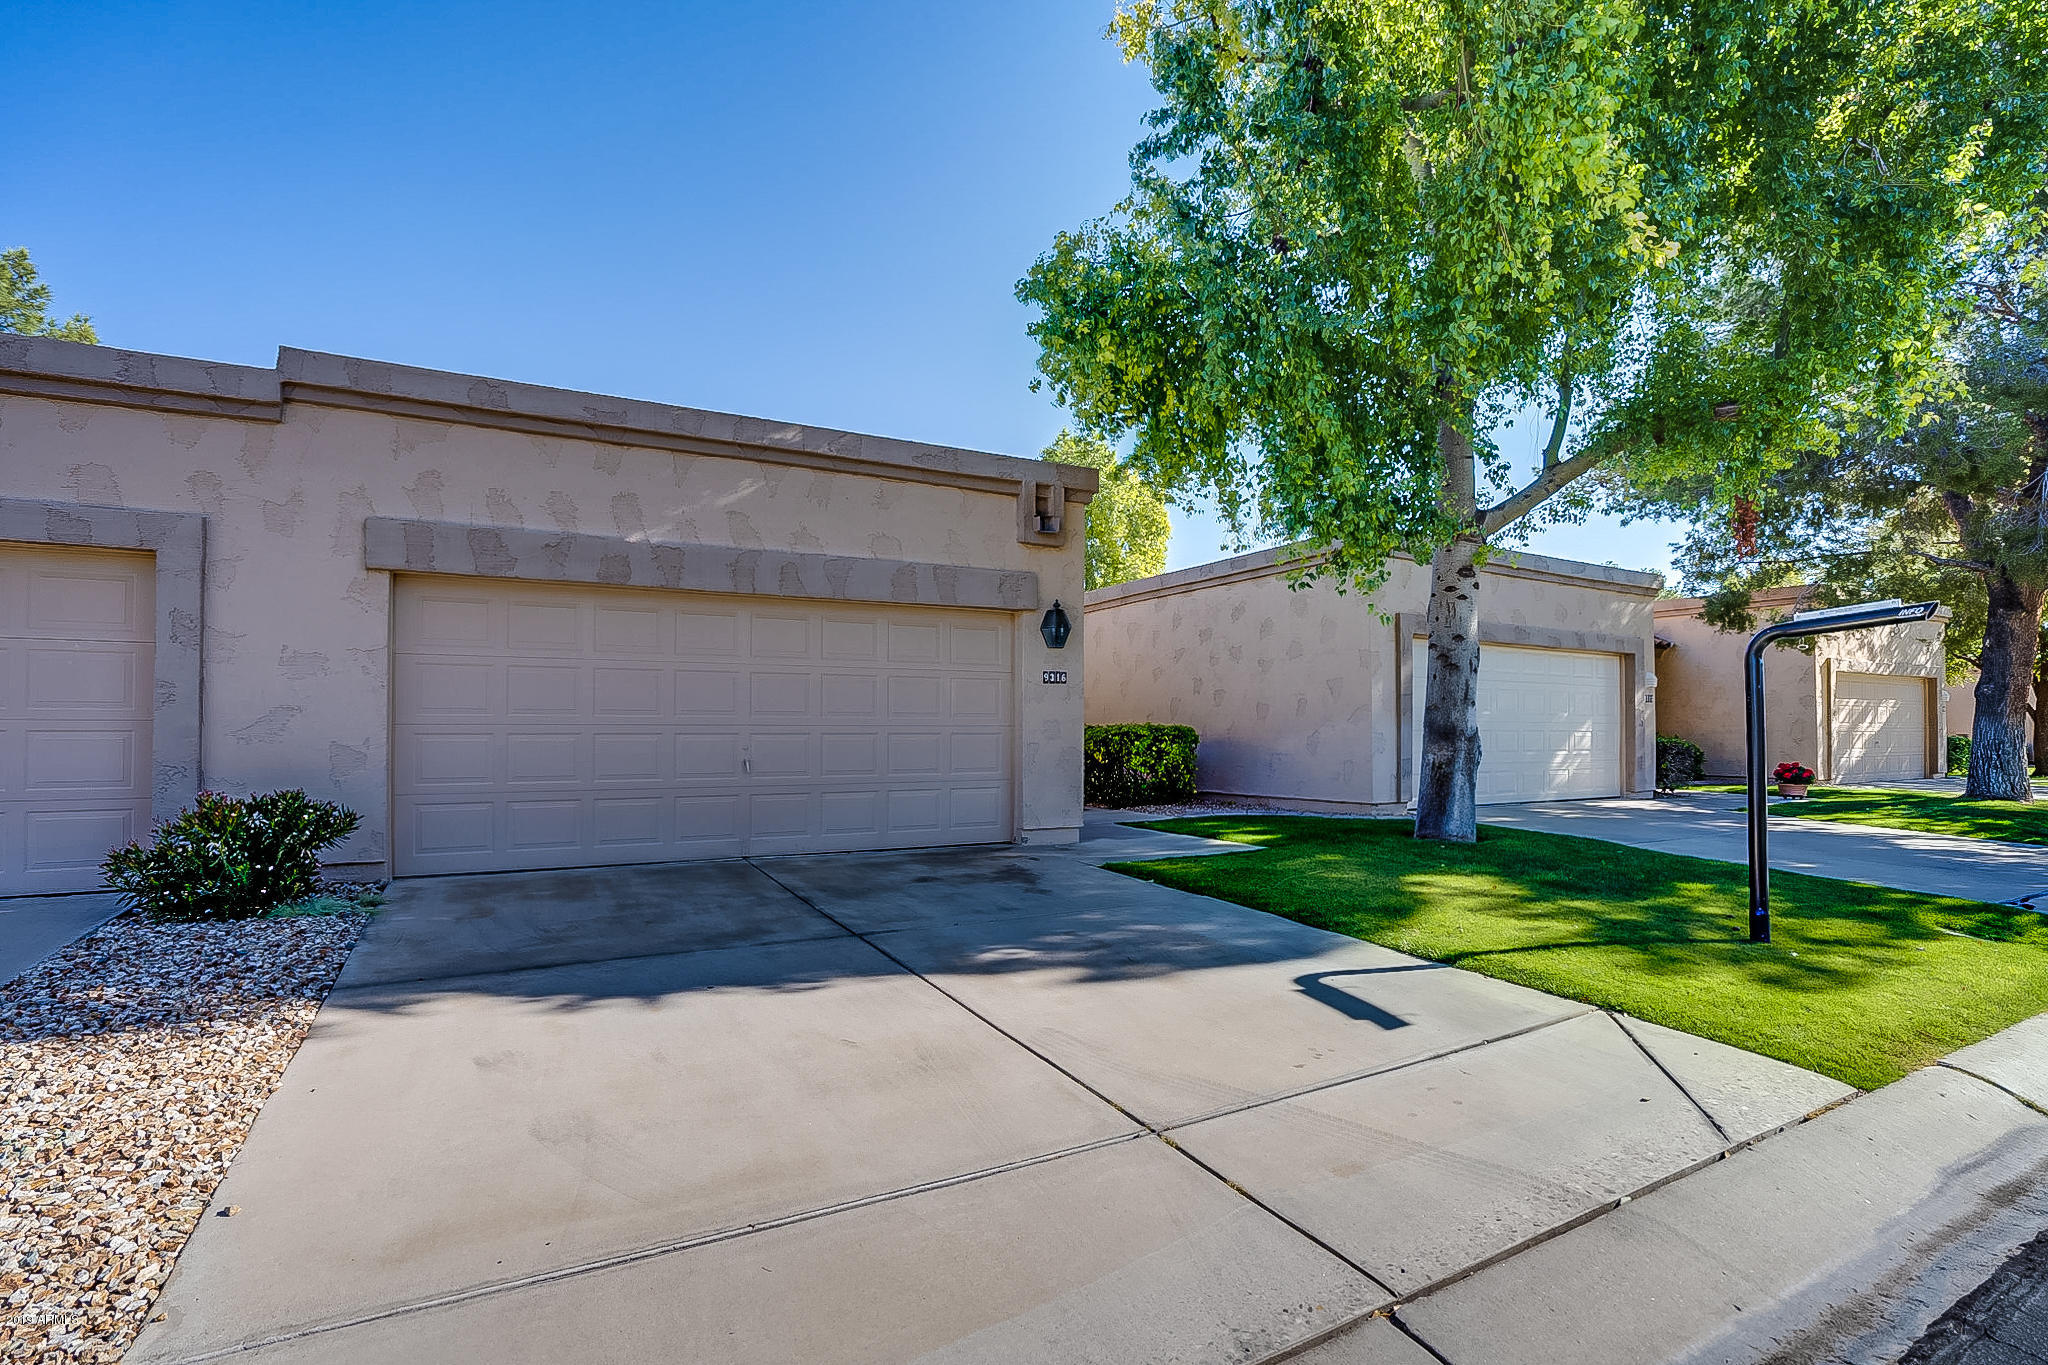 9316 W UTOPIA Road, one of homes for sale in Peoria